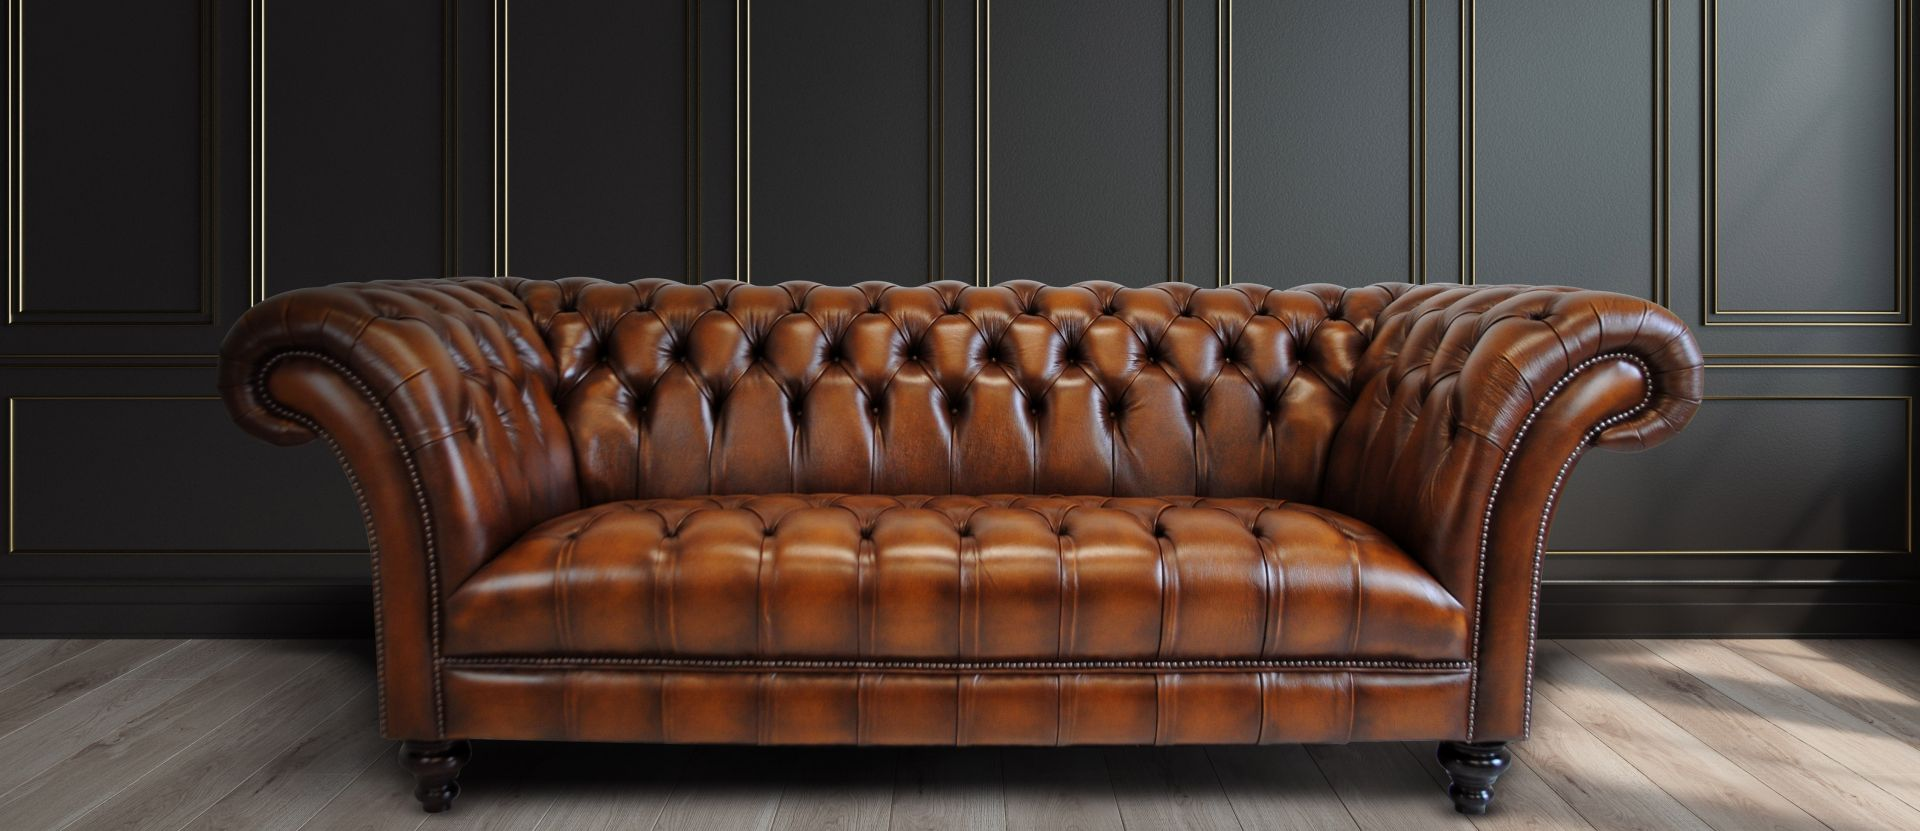 Canapé Anglais Chesterfield Chesterfield France Chesterfield Le Canapé Lit Grand